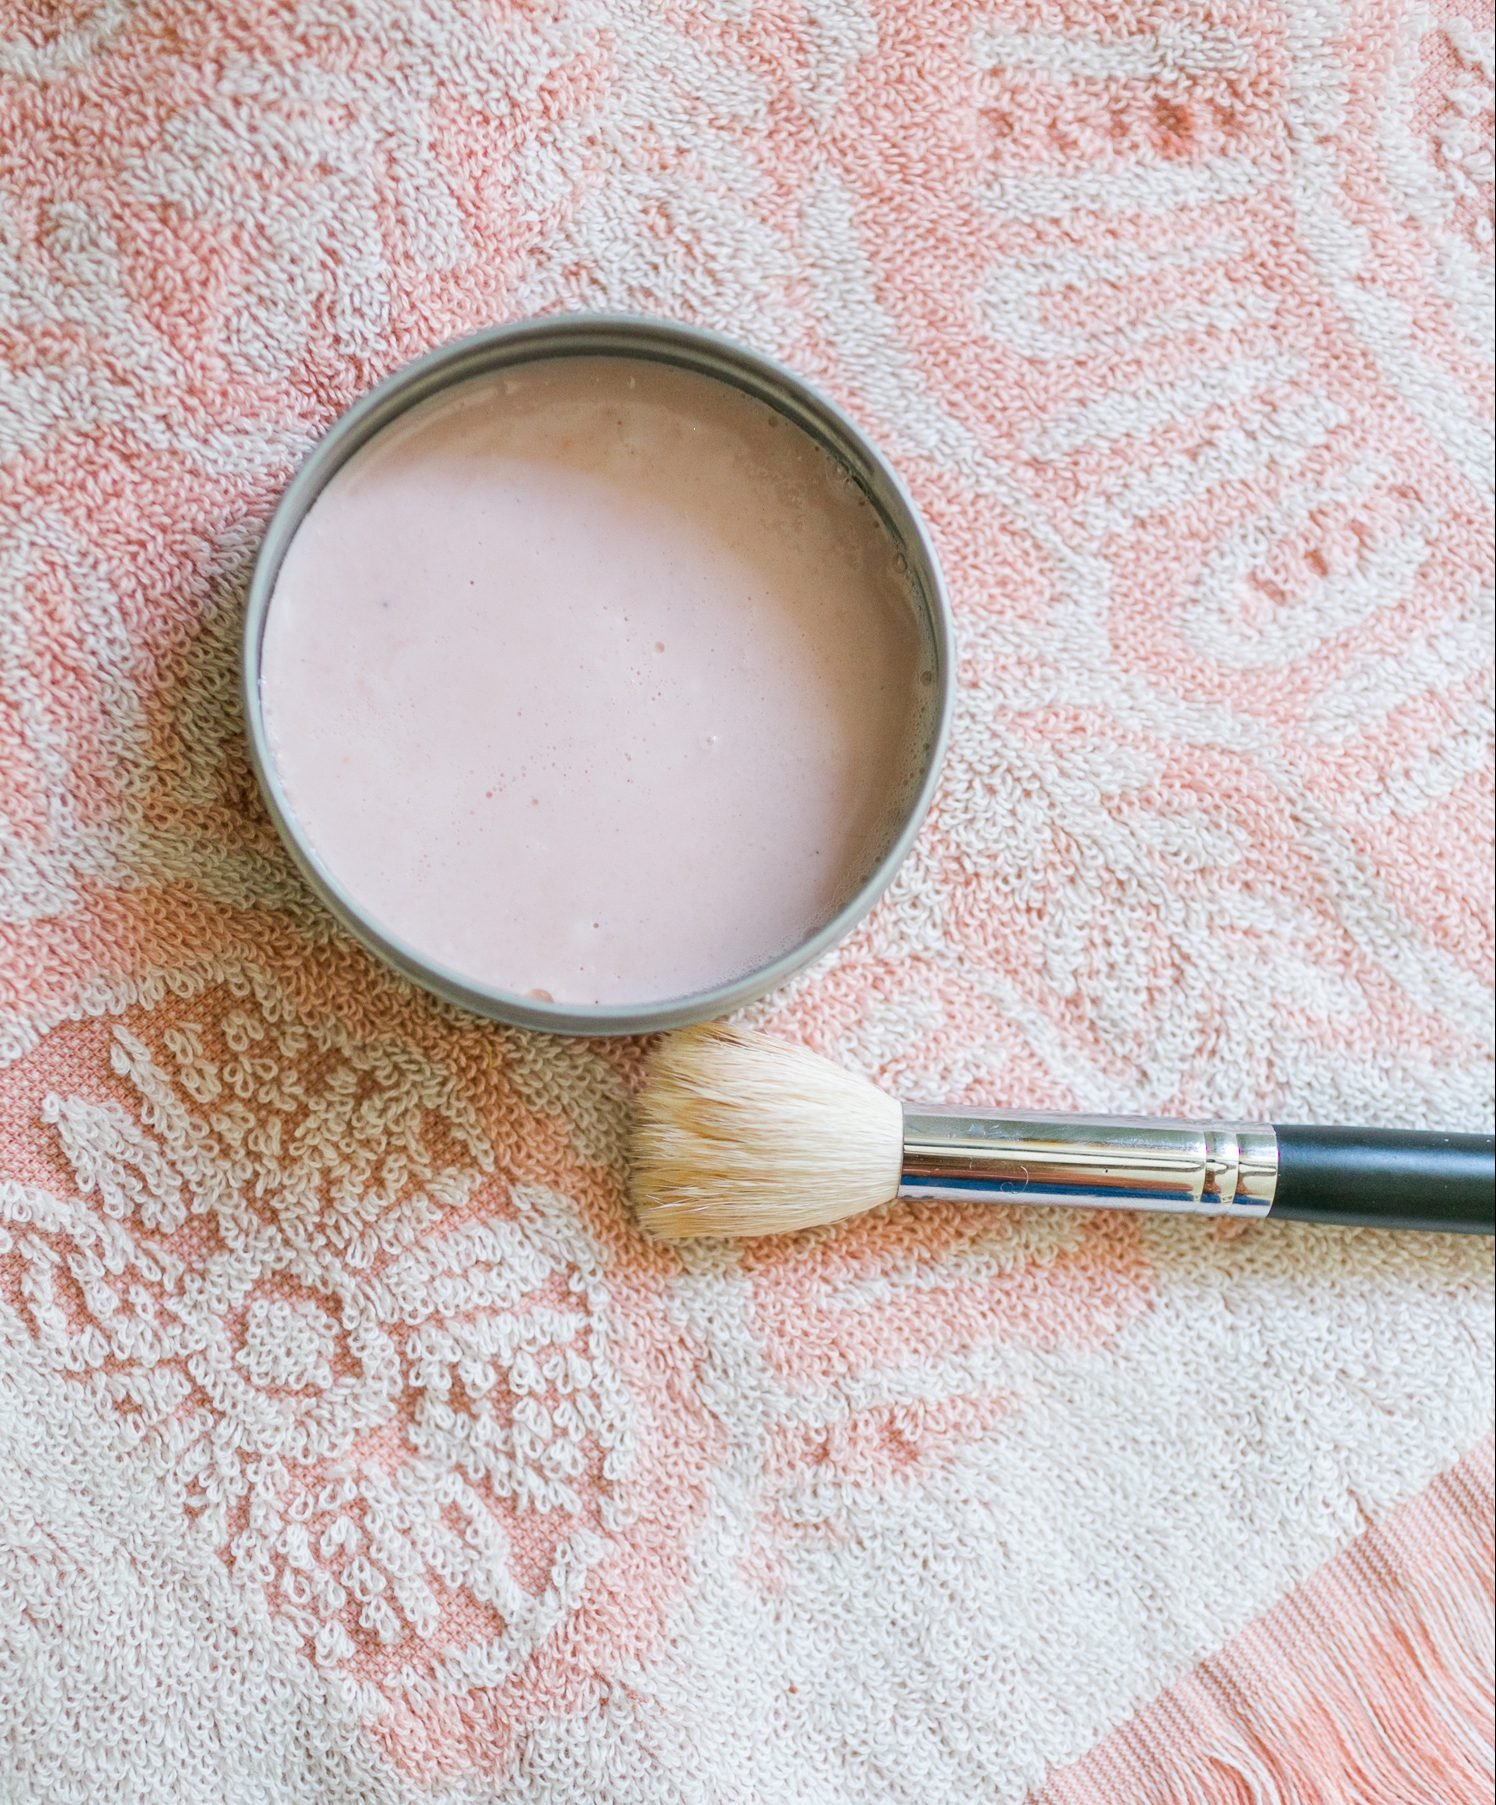 Solid Cleaner For Makeup Brushes And